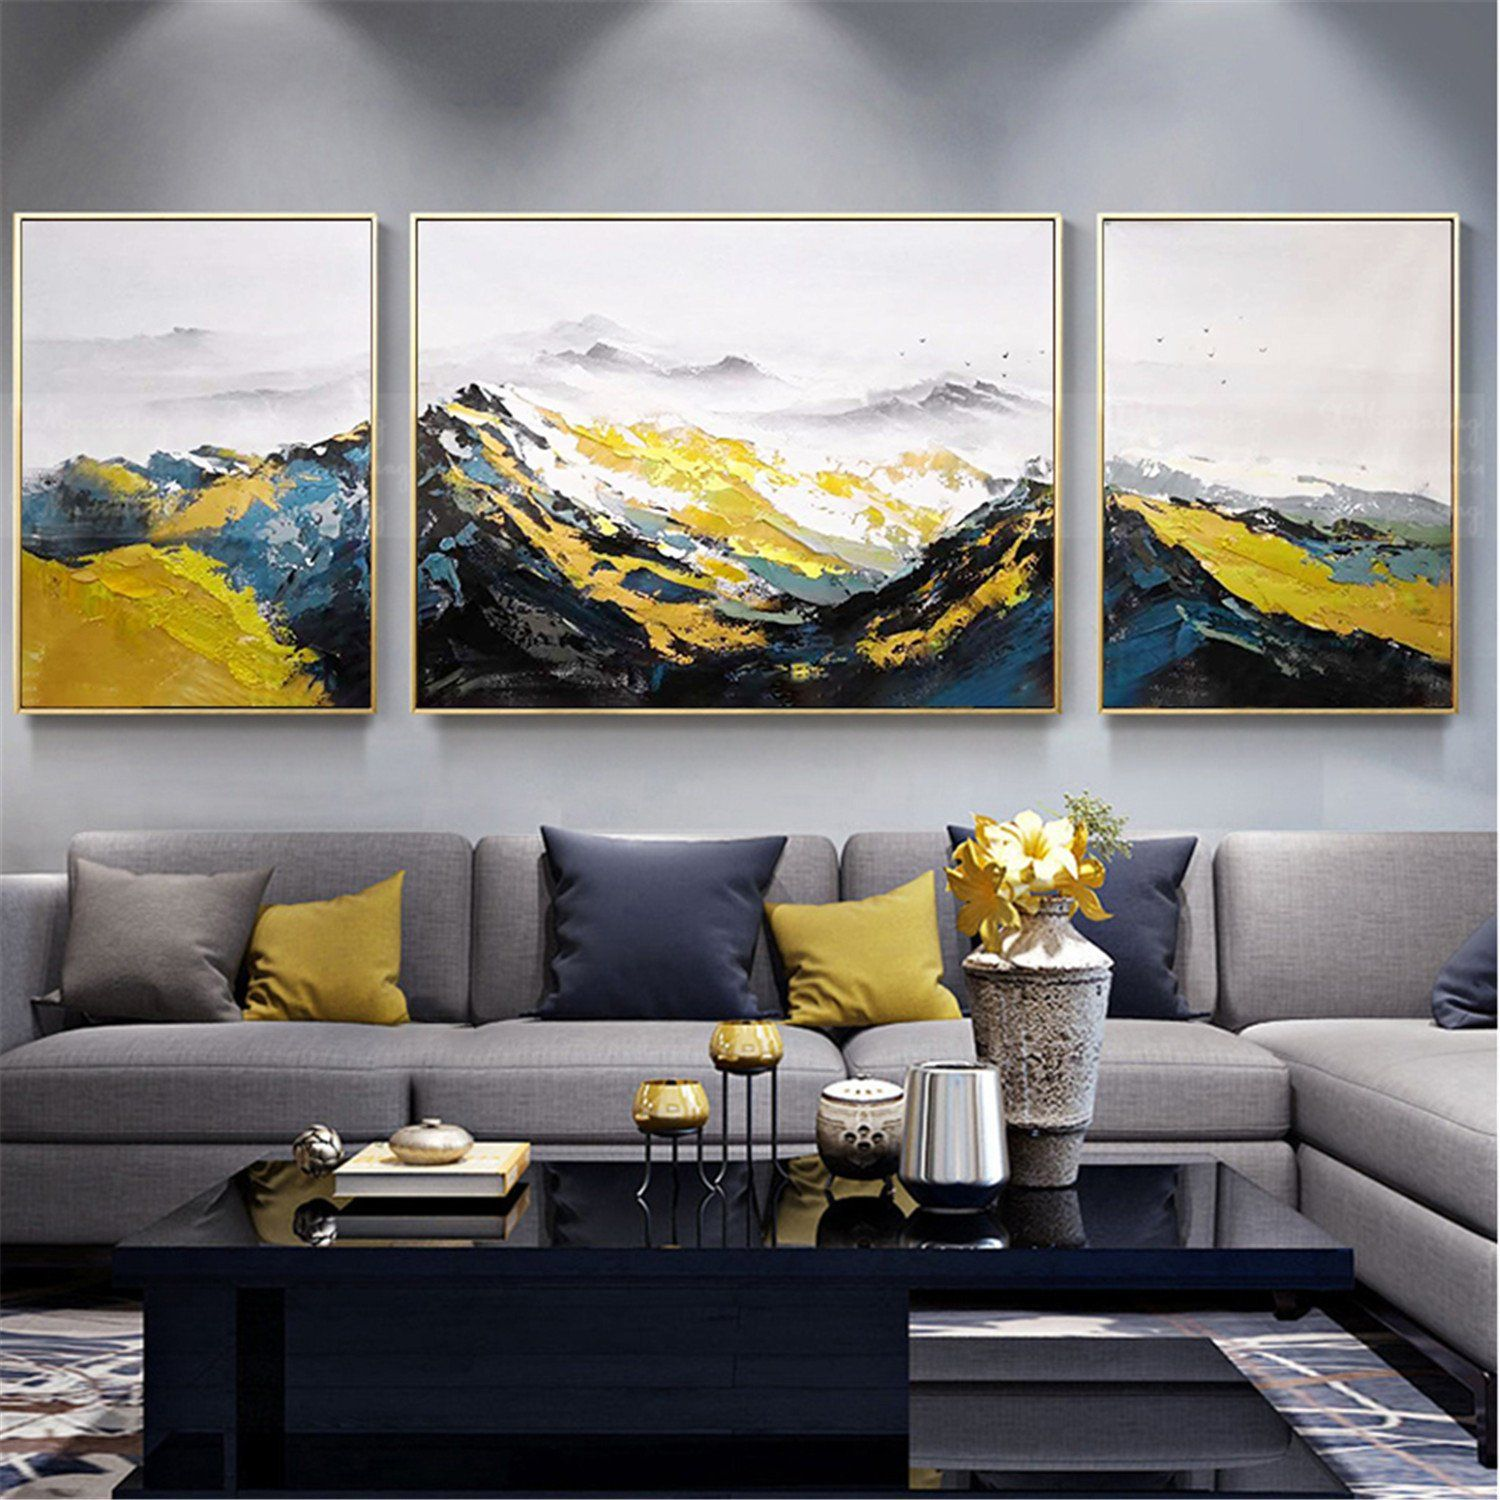 3 Pieces Abstract Painting Original Acrylic Canvas Wall Art Etsy In 2020 Living Room Canvas Living Room Art Bedroom Frames